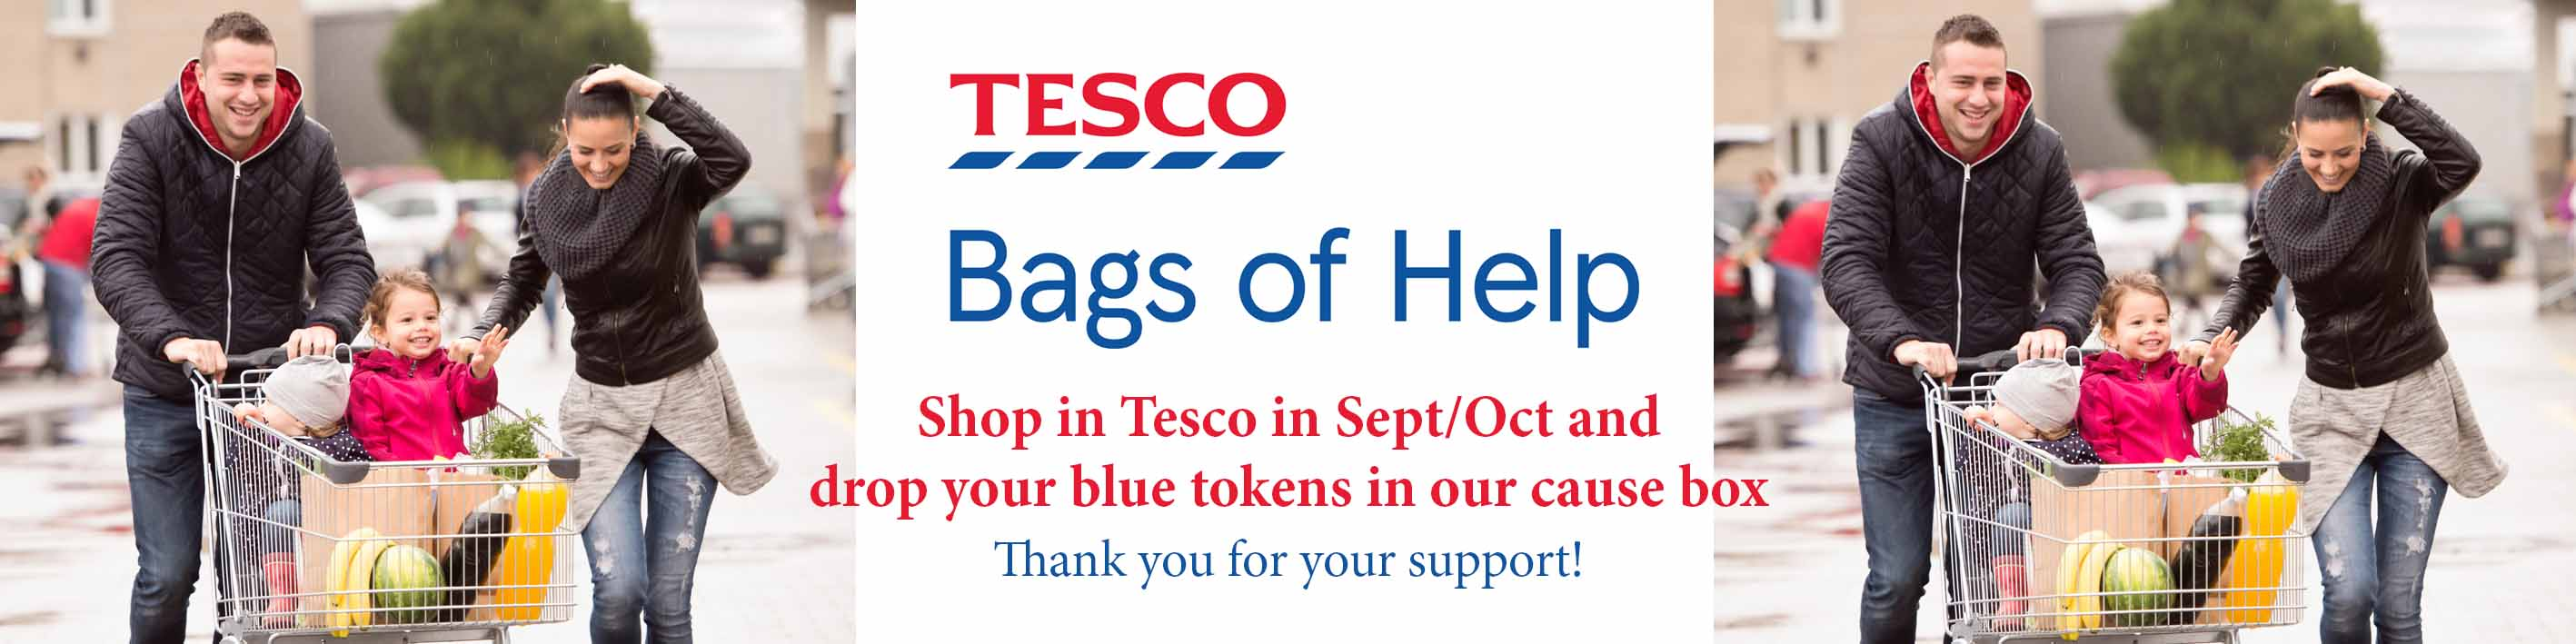 home-slider-Tesco-Bags-of-Help